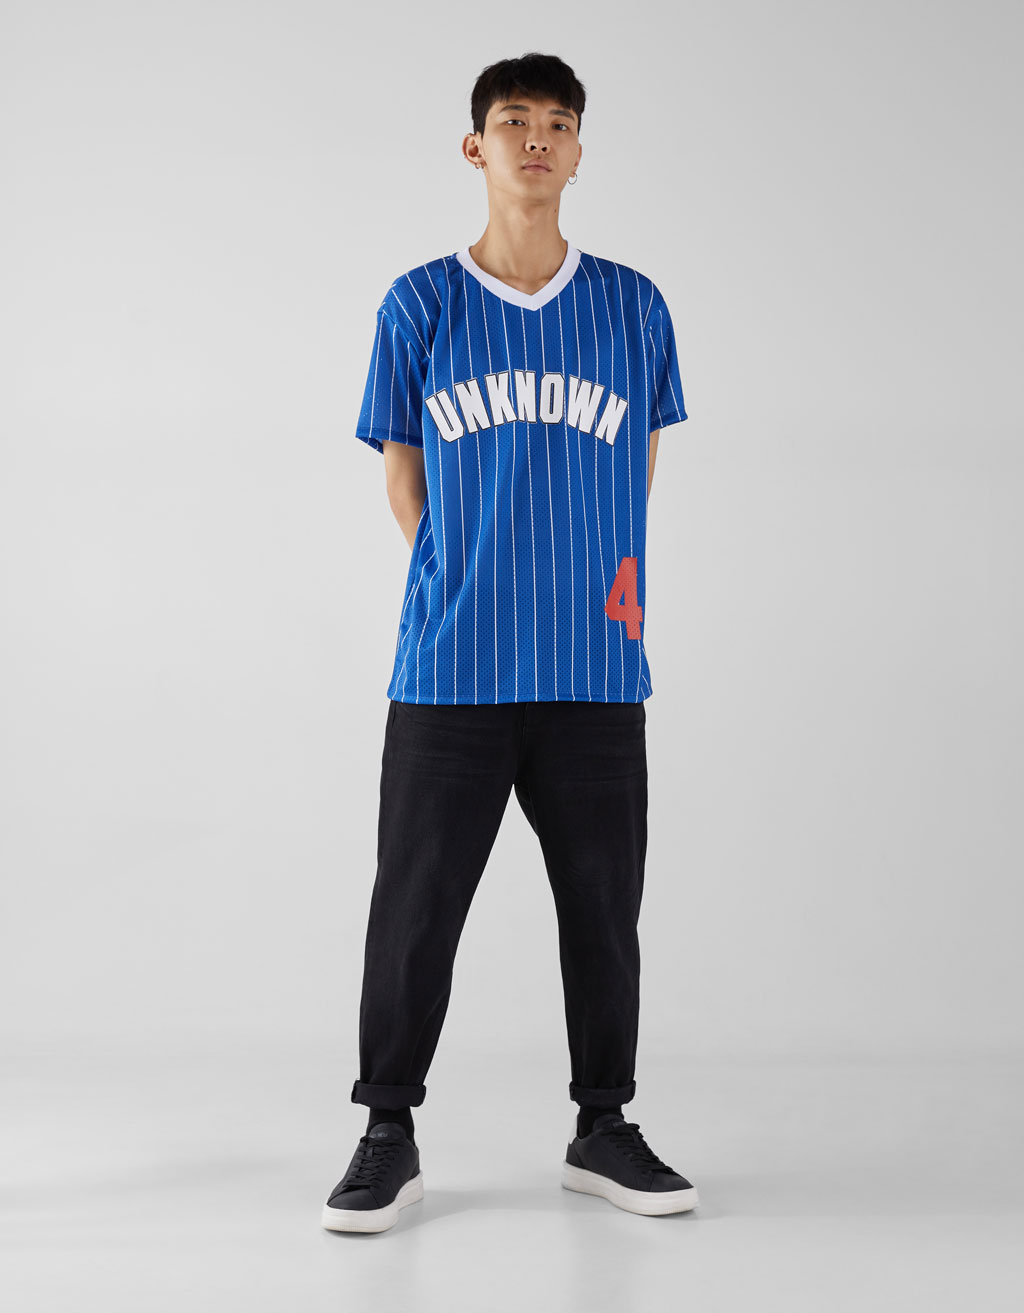 "Baseball-Shirt aus Mesh-Gewebe ""UNKNOWN"""